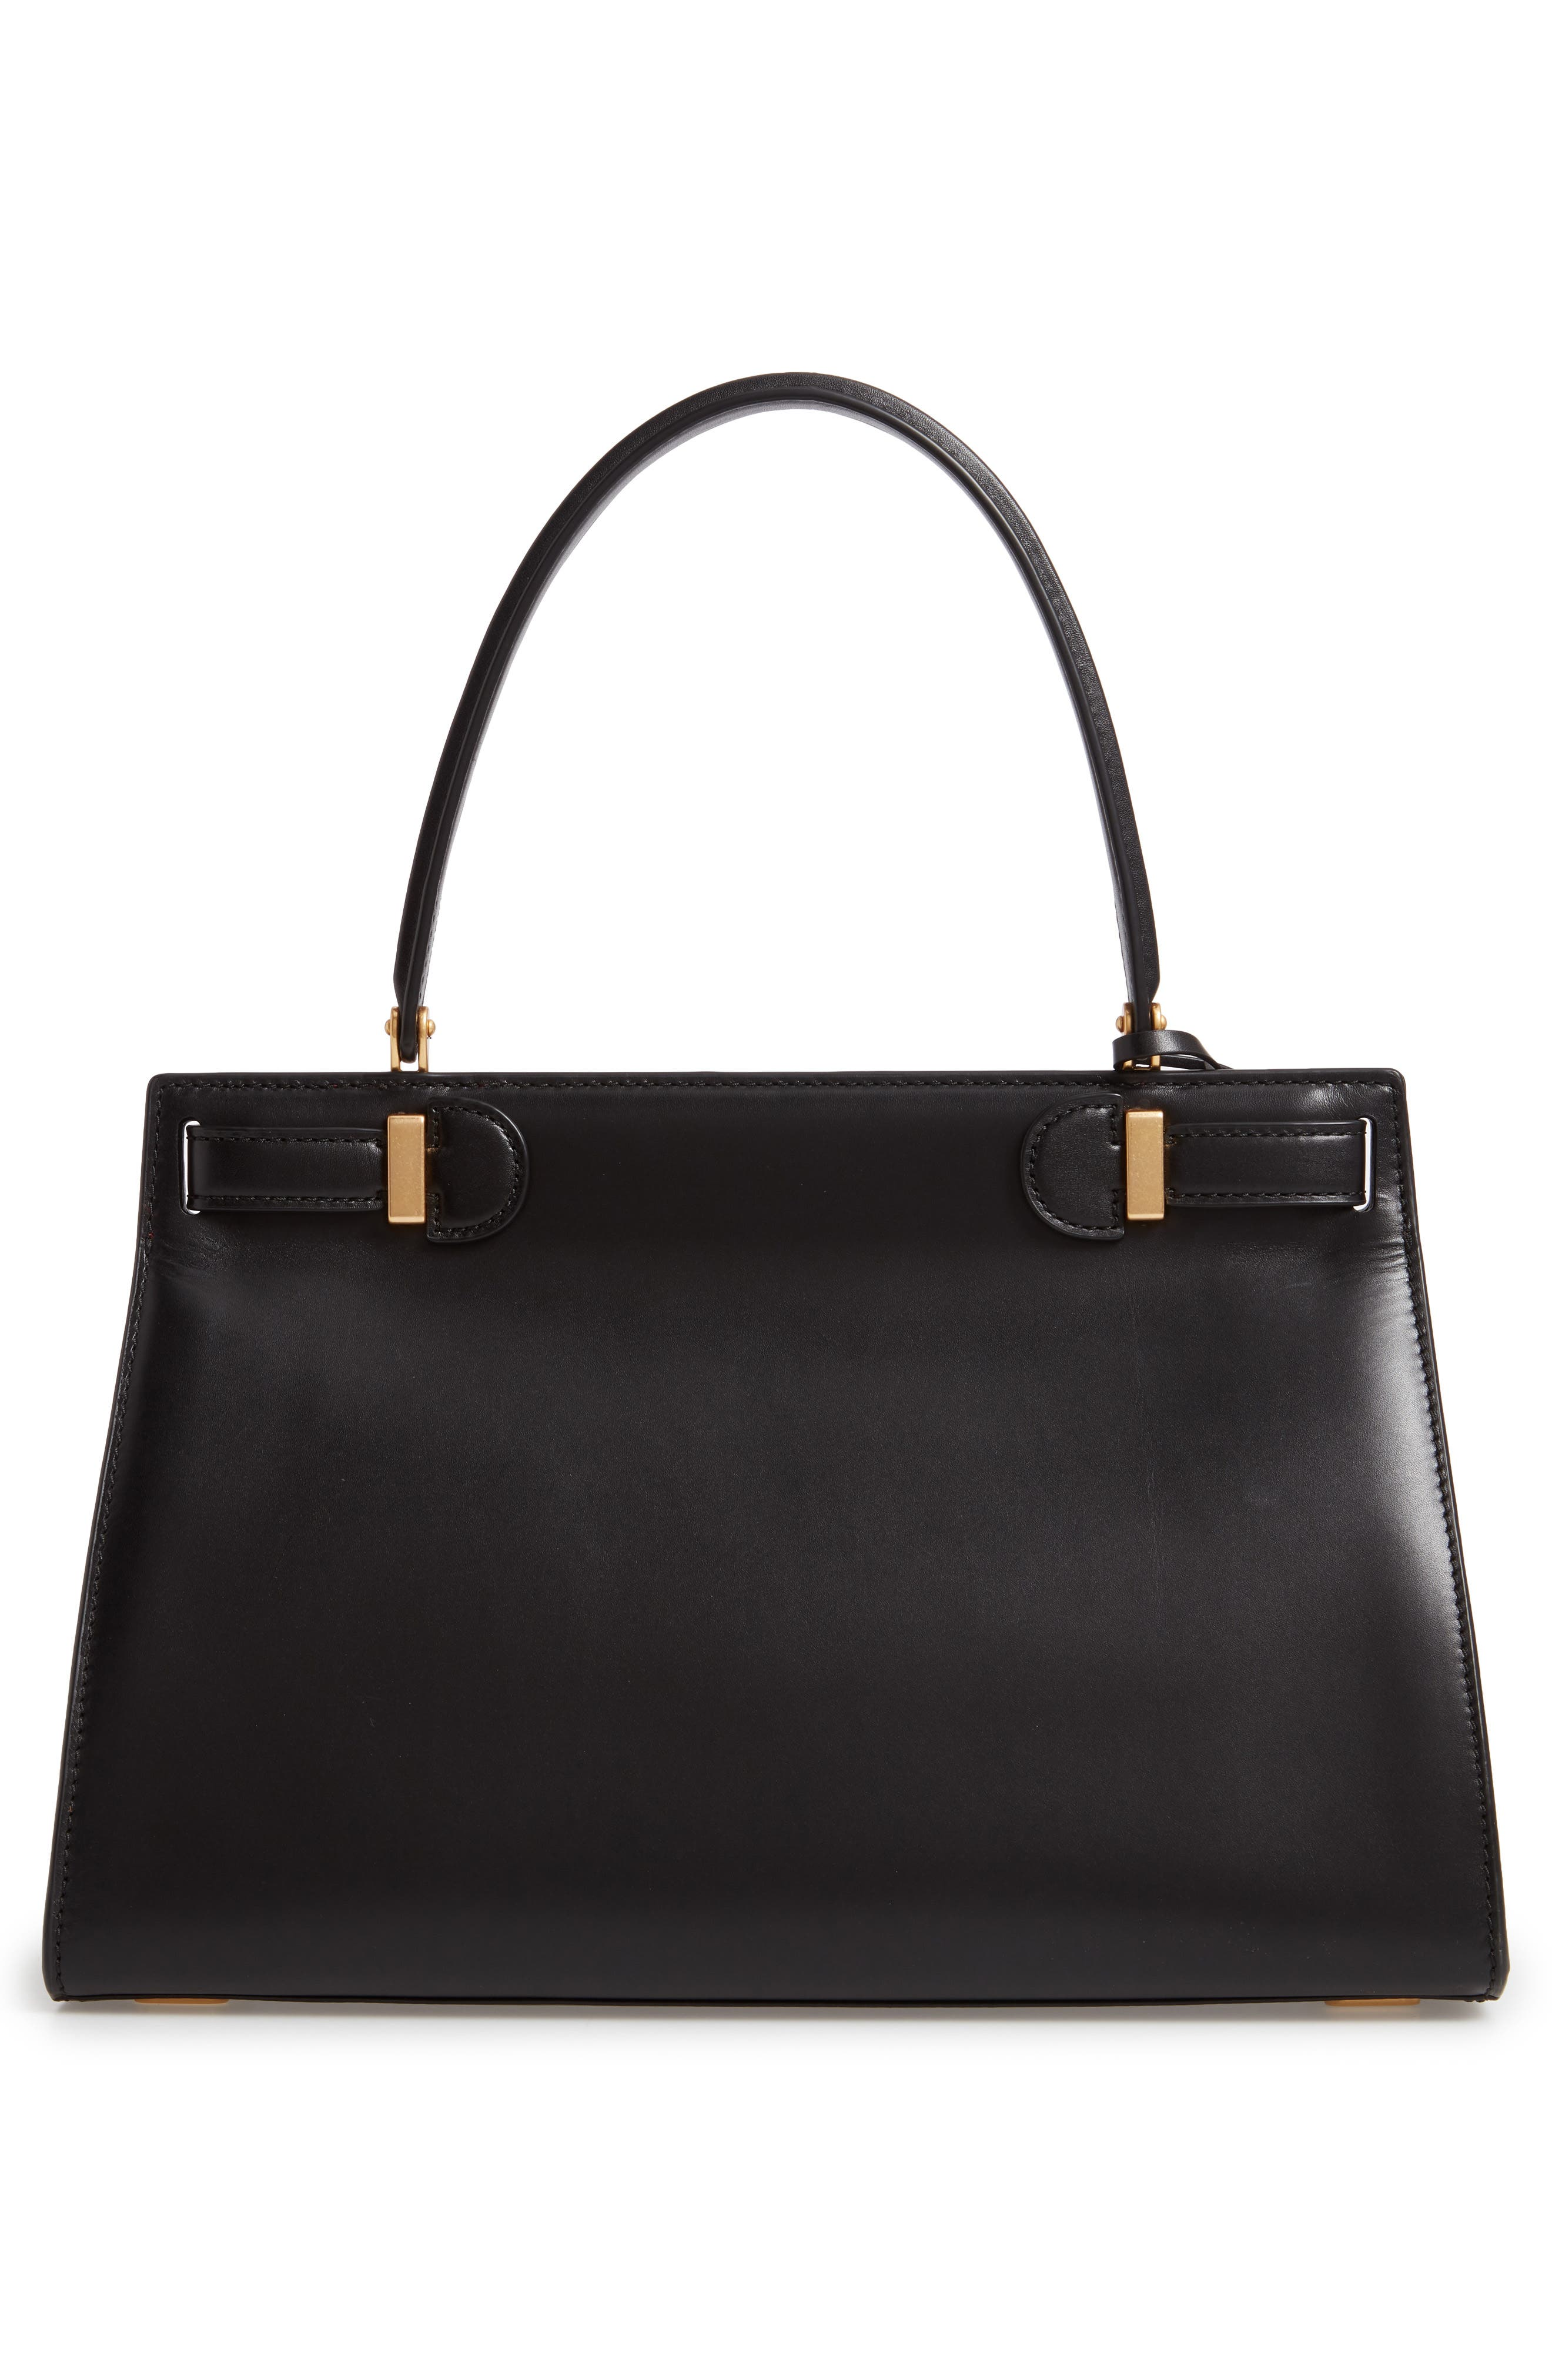 Lee Radziwill Small Leather Satchel,                             Alternate thumbnail 3, color,                             BLACK